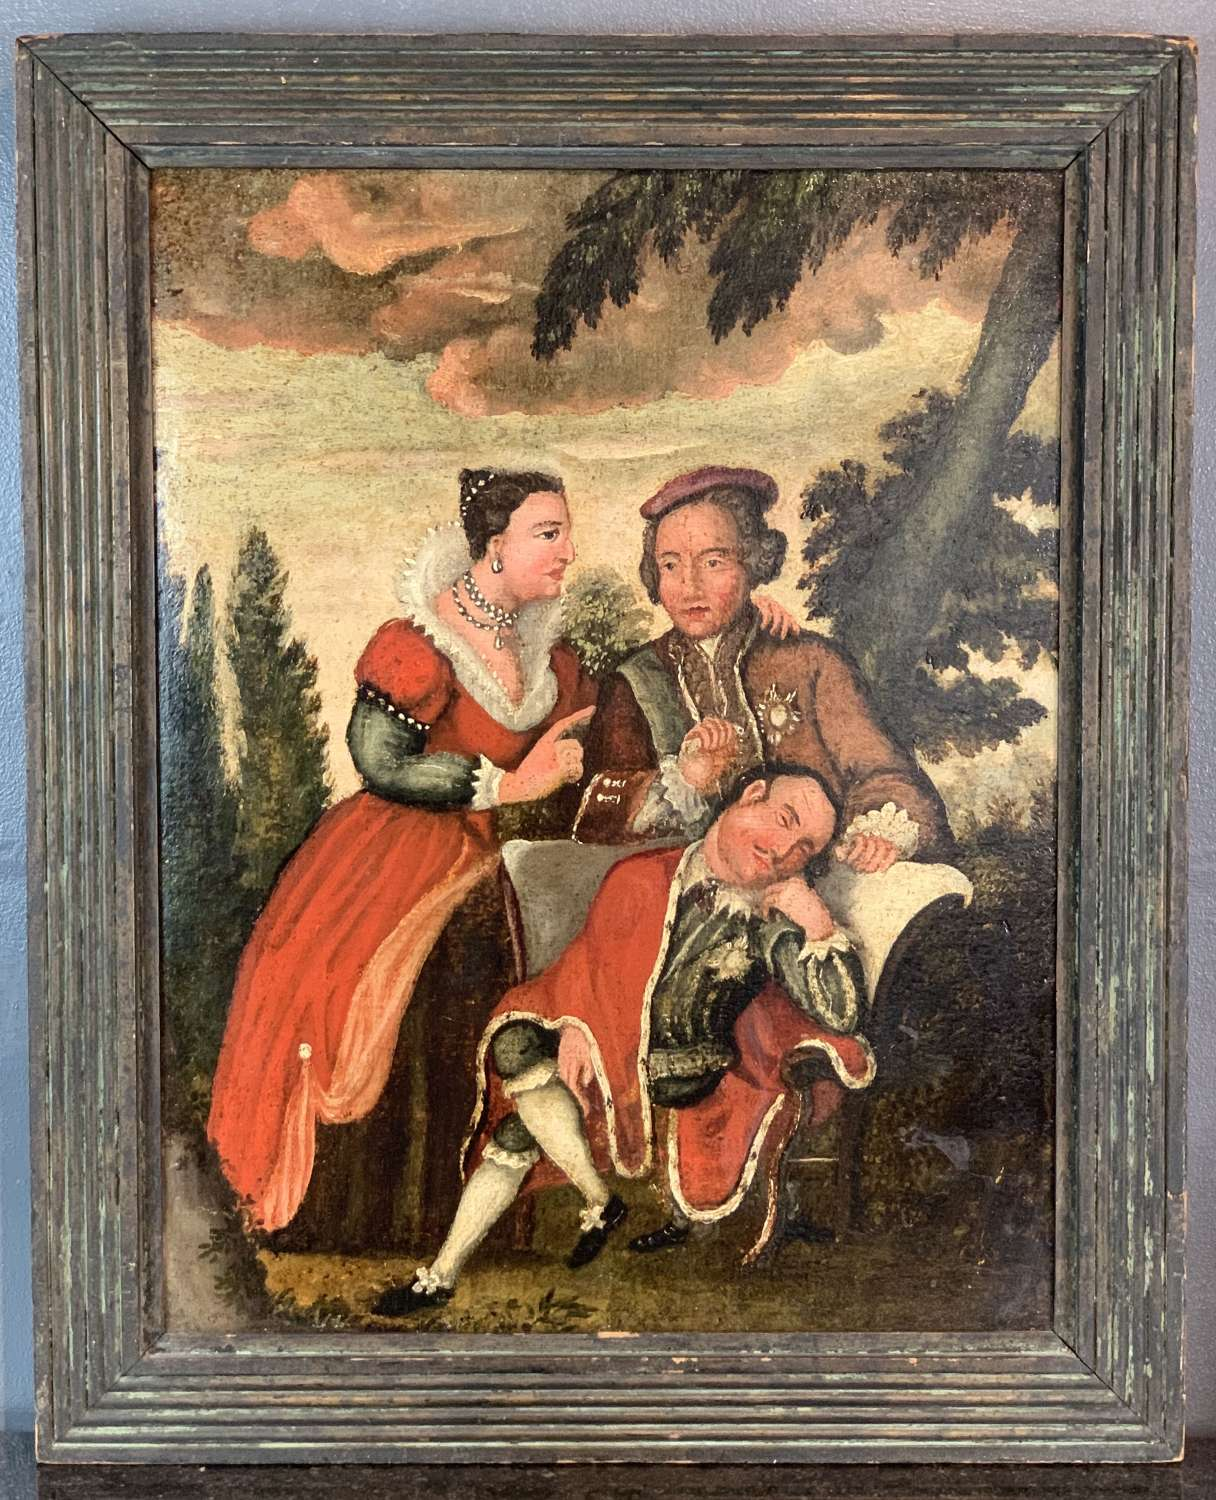 Naive Allegorical Oil on Canvas of Scottish Interest, early 19th C.